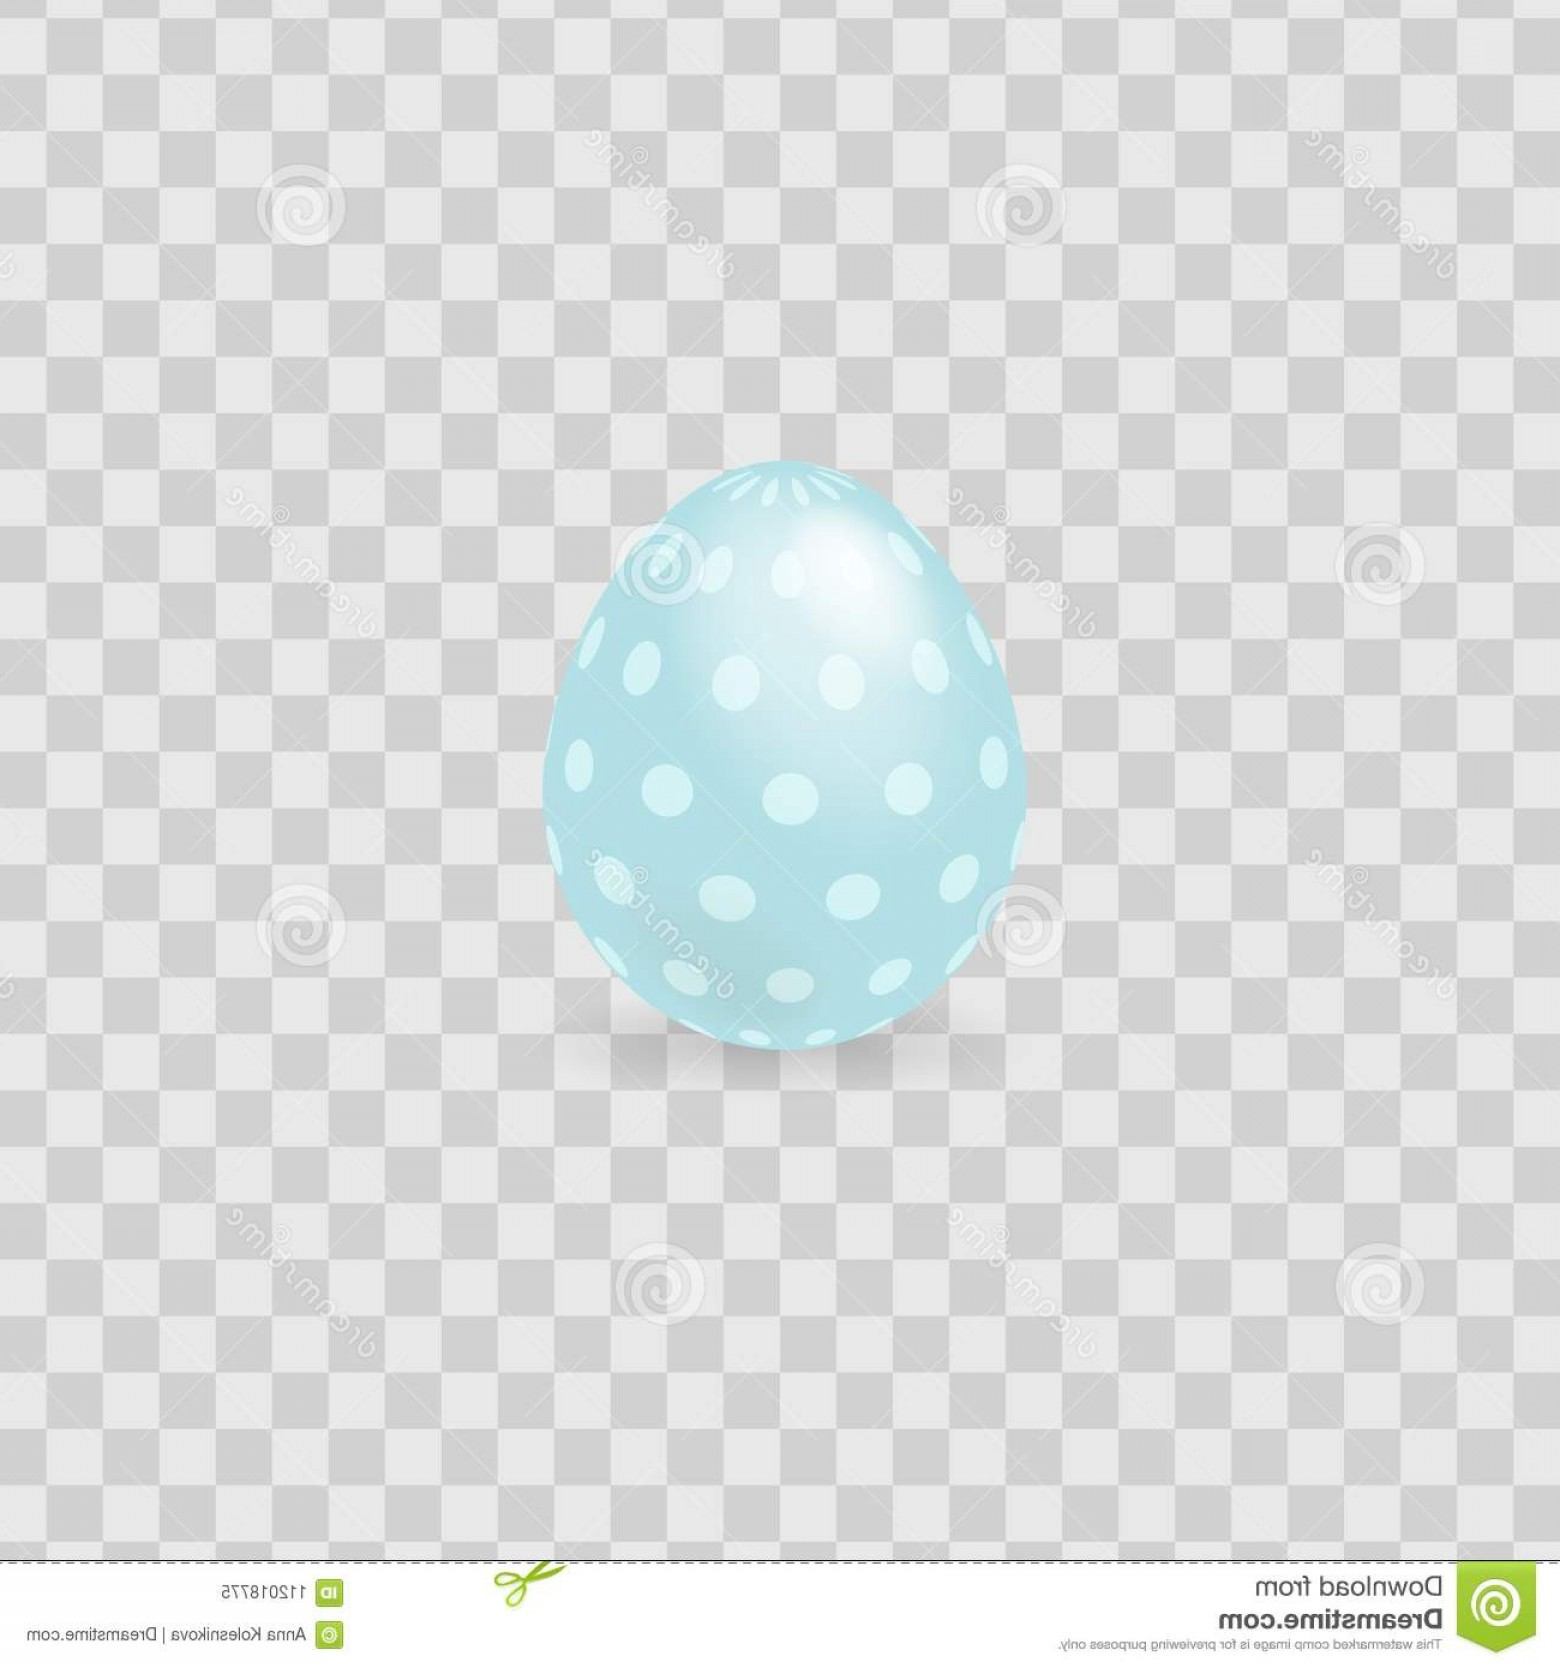 Easter Vector No Background: Colorful Easter Egg Isolated Transparent Background Vector Illustration Colorful Easter Egg Isolated Transparent Background Image